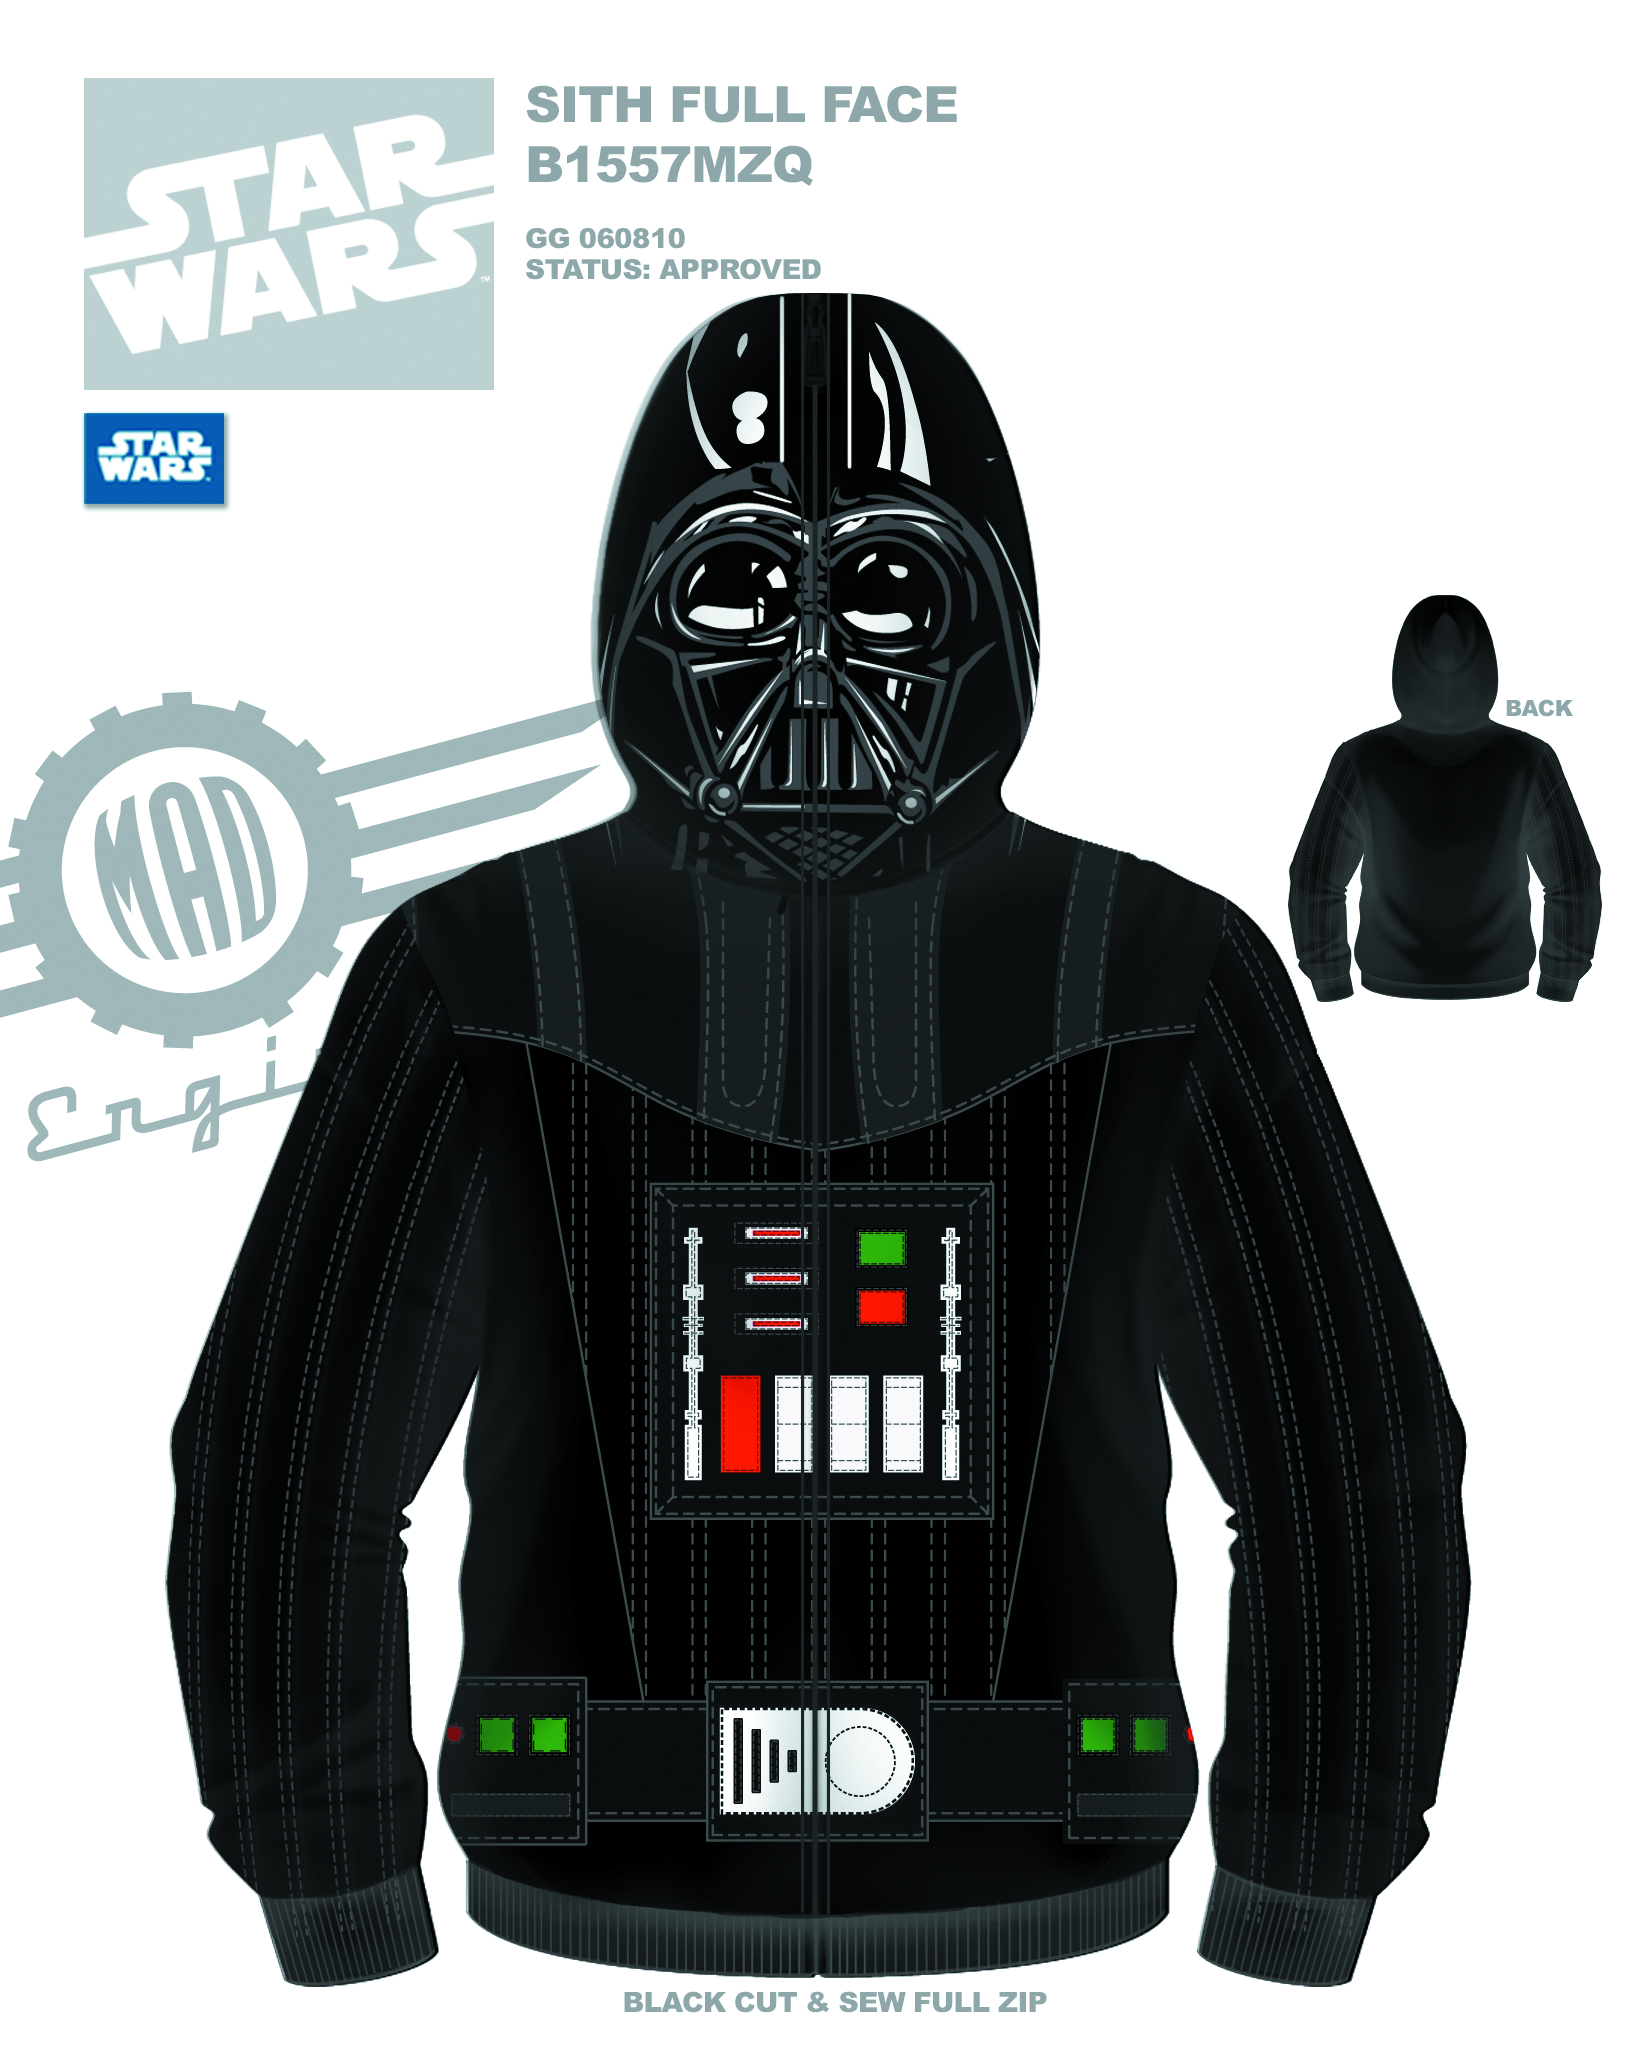 SW SITH FULL FACE VADER COSTUME HOODIE SM